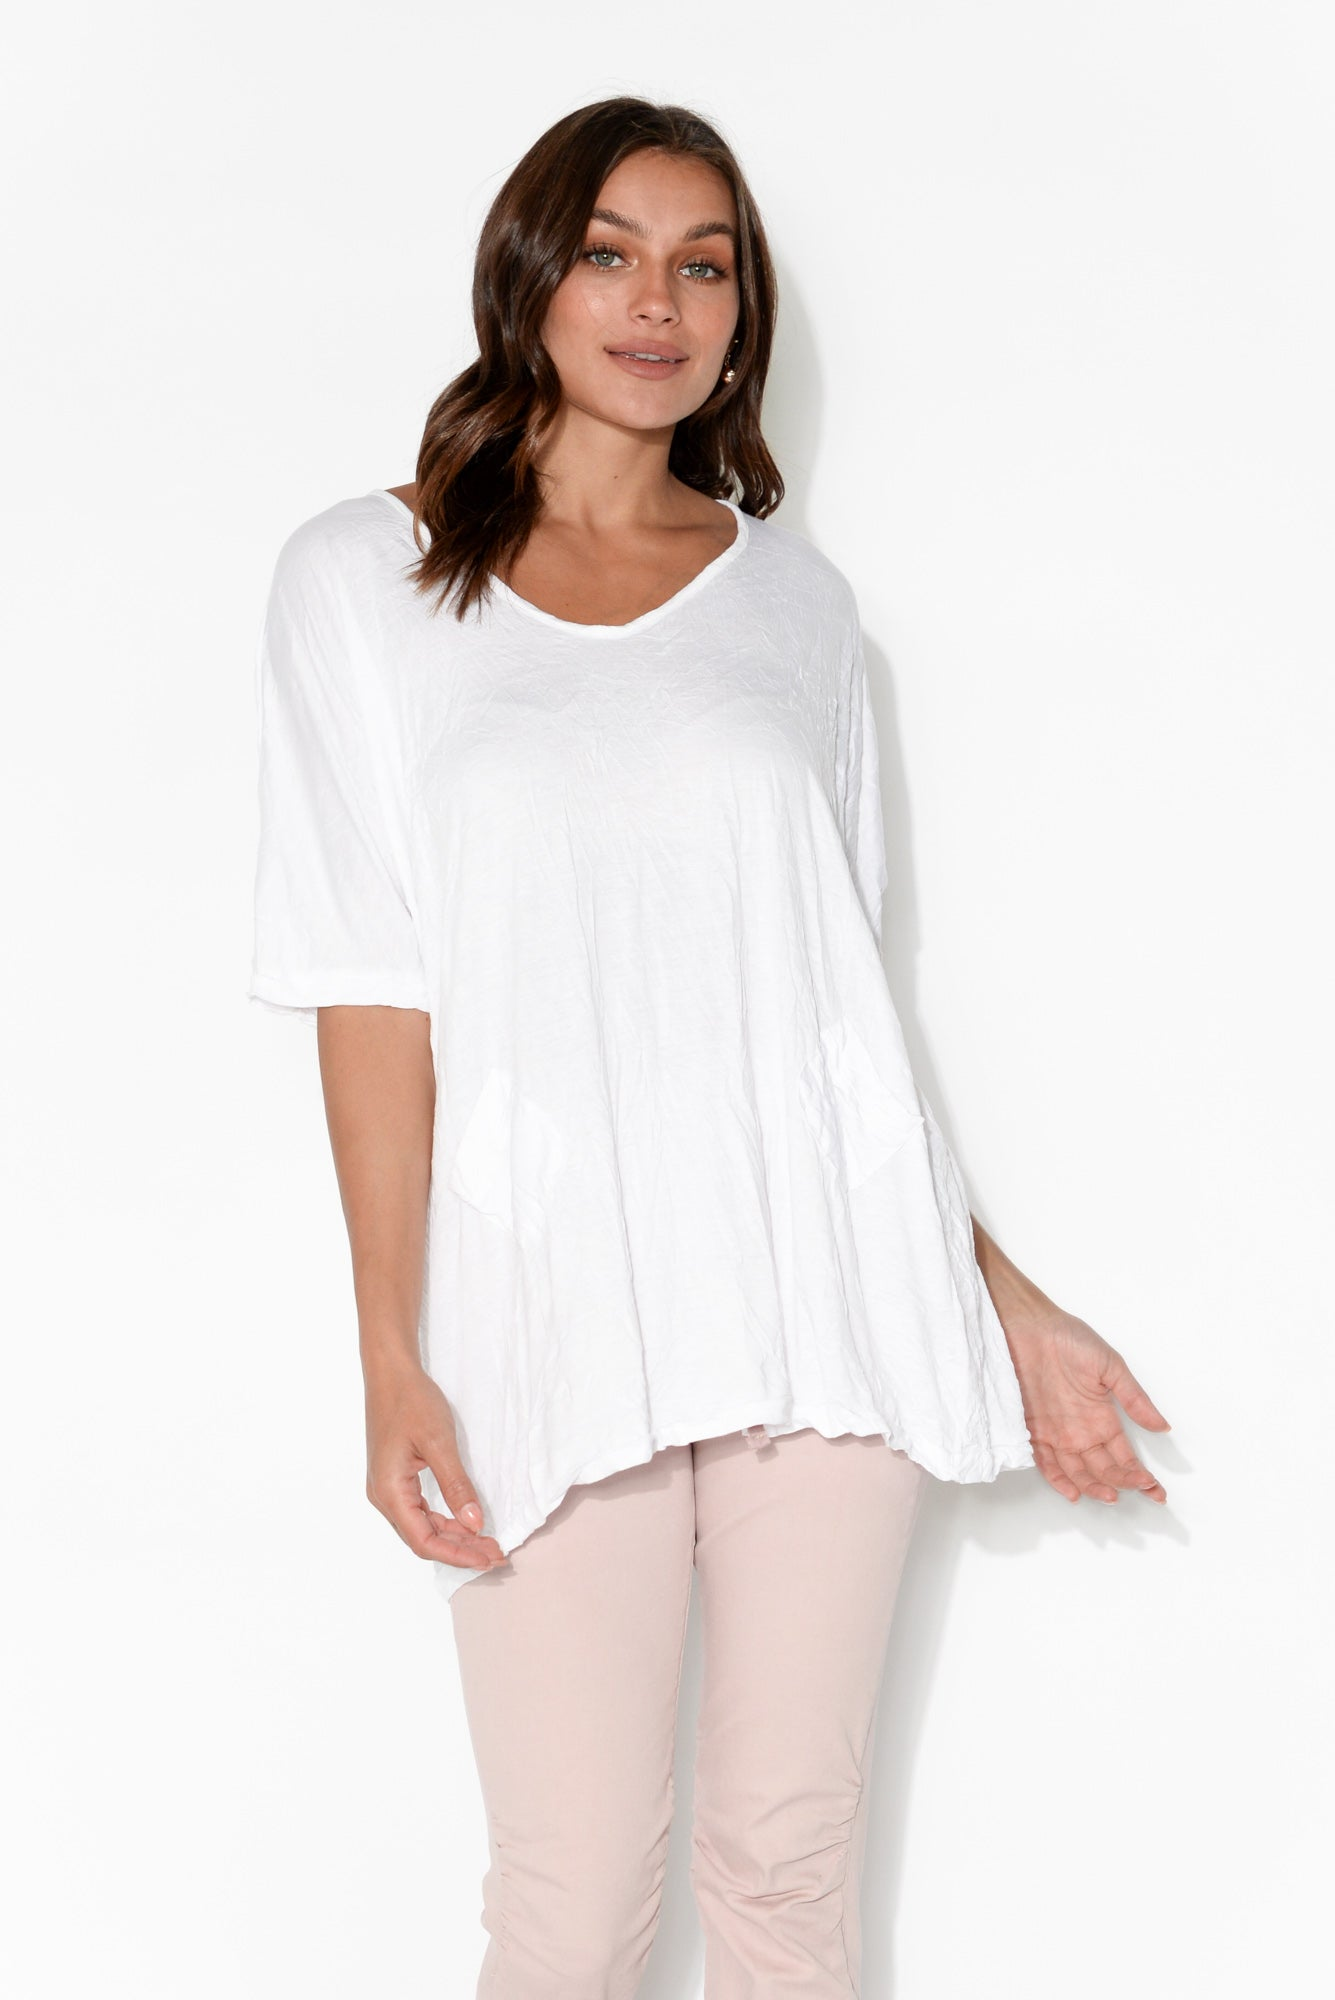 Greer White Pocket Crinkle Cotton Top